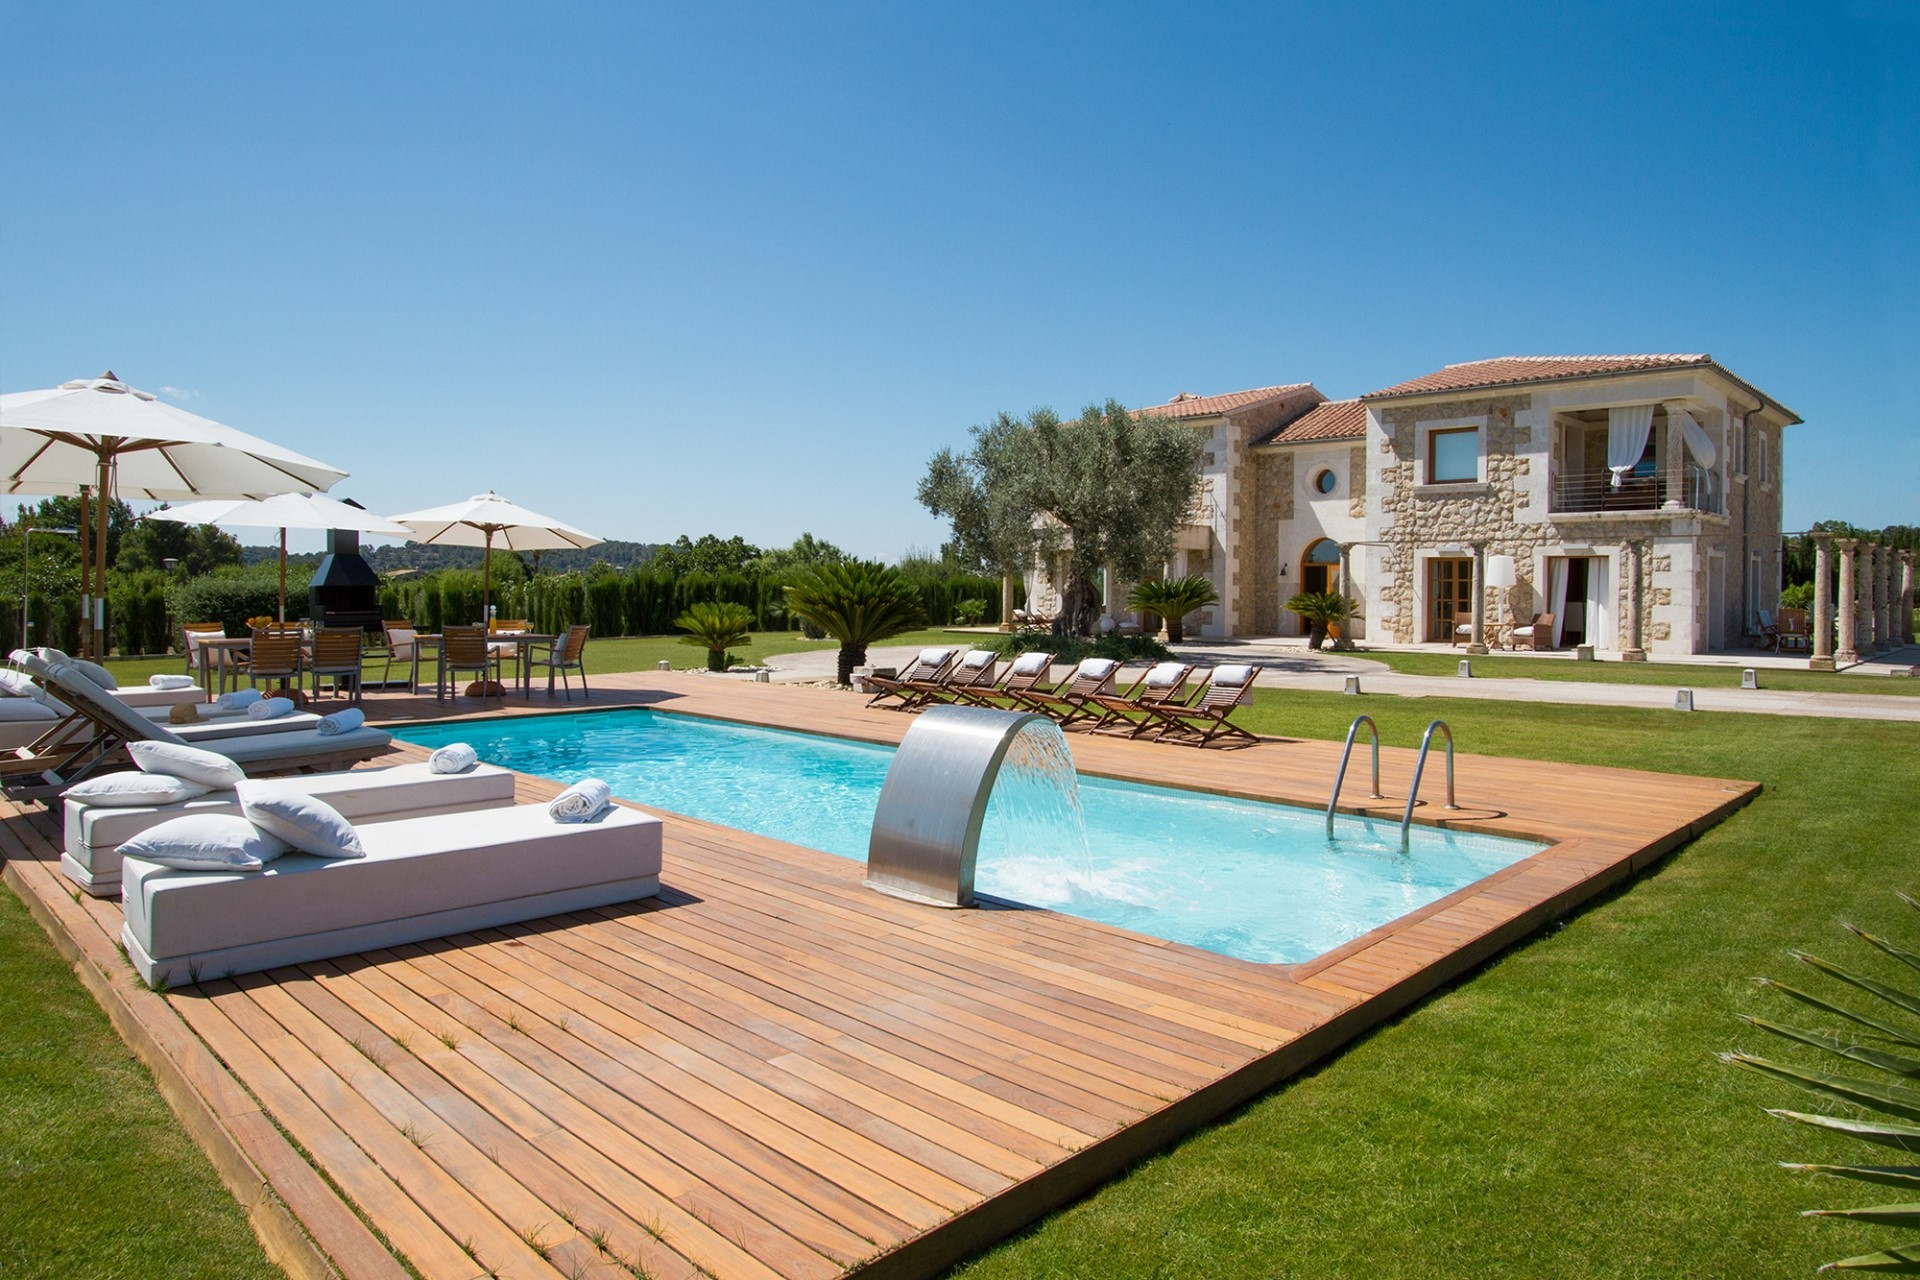 Villa or Hotel? Why Our Private Villa Holidays Offer You More!